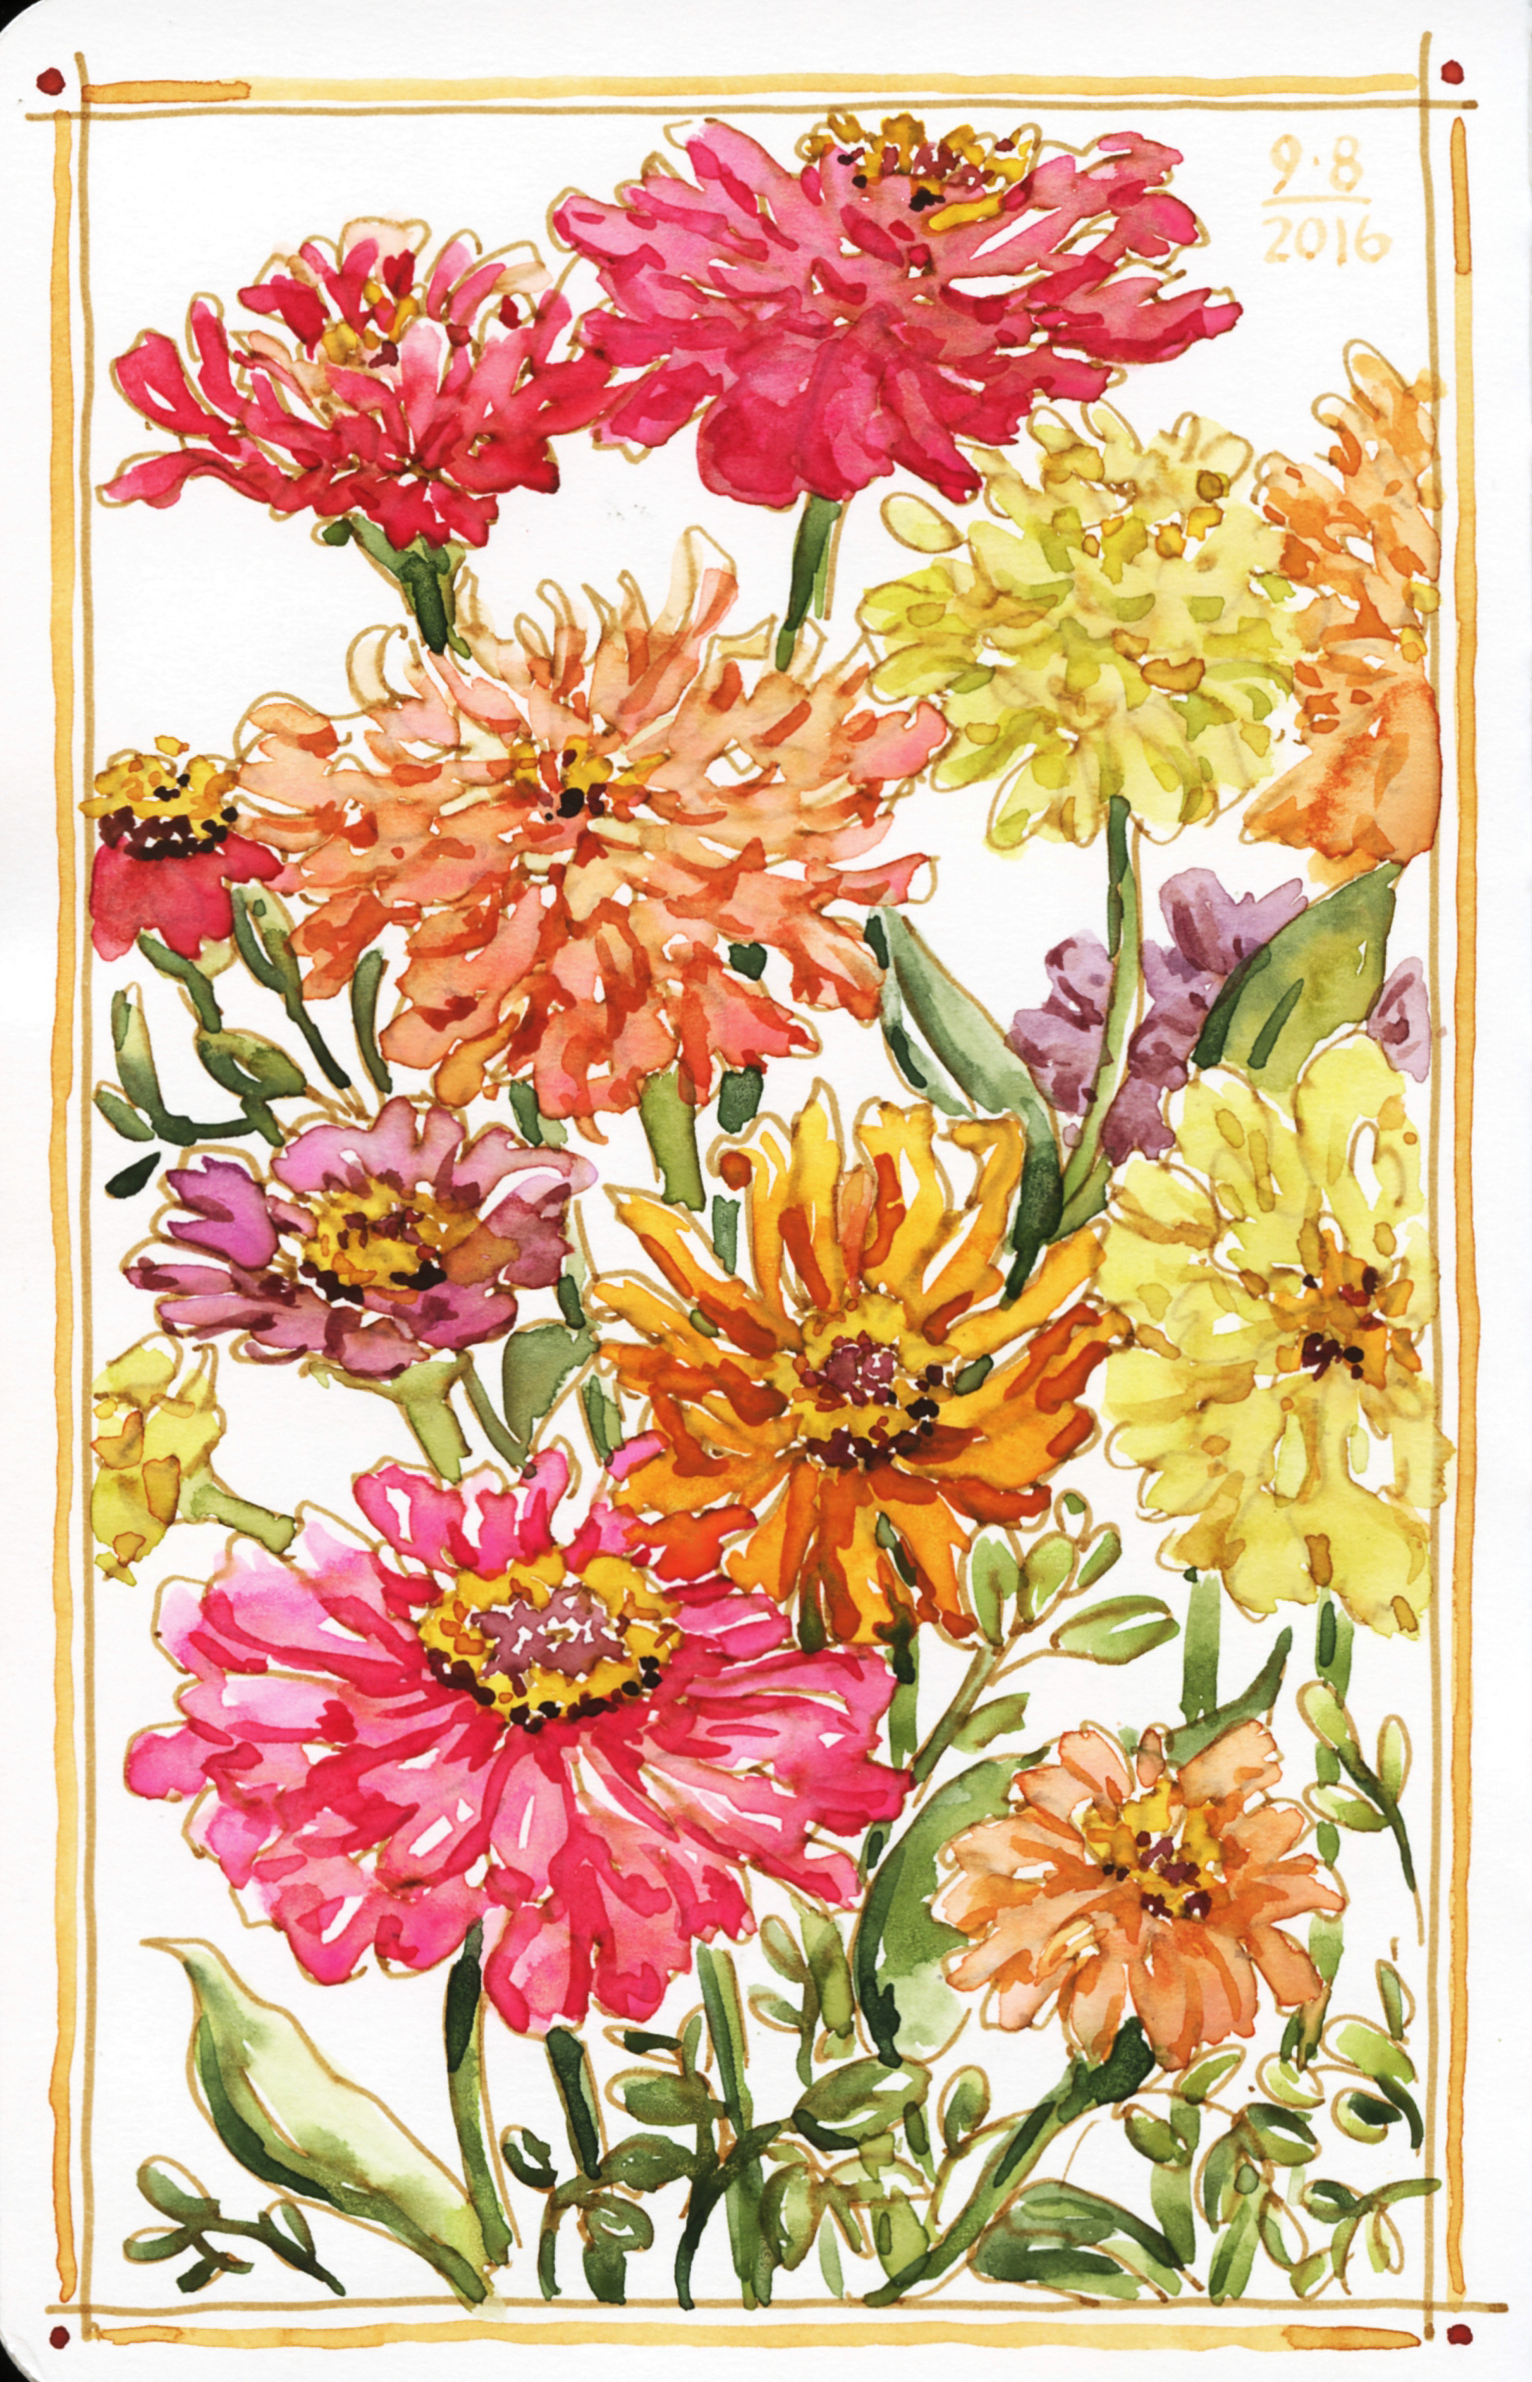 <b>Zinnias From My Garden</b>